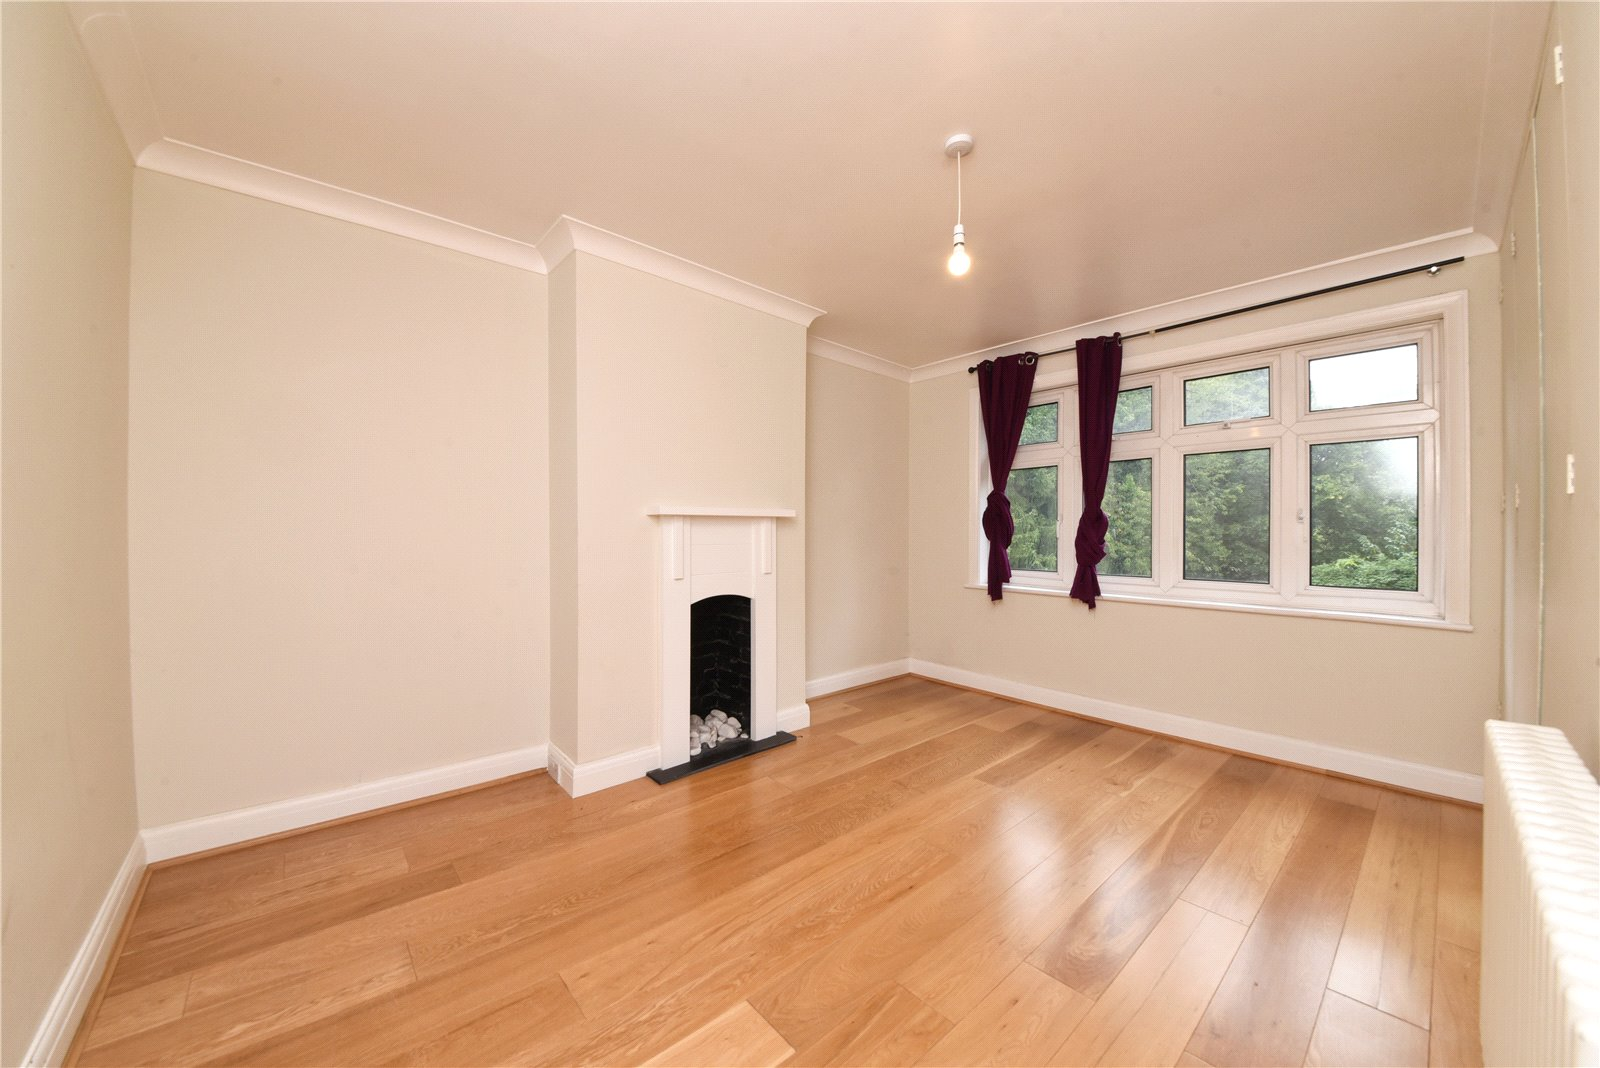 4 bed house to rent in Longland Drive, Totteridge 7